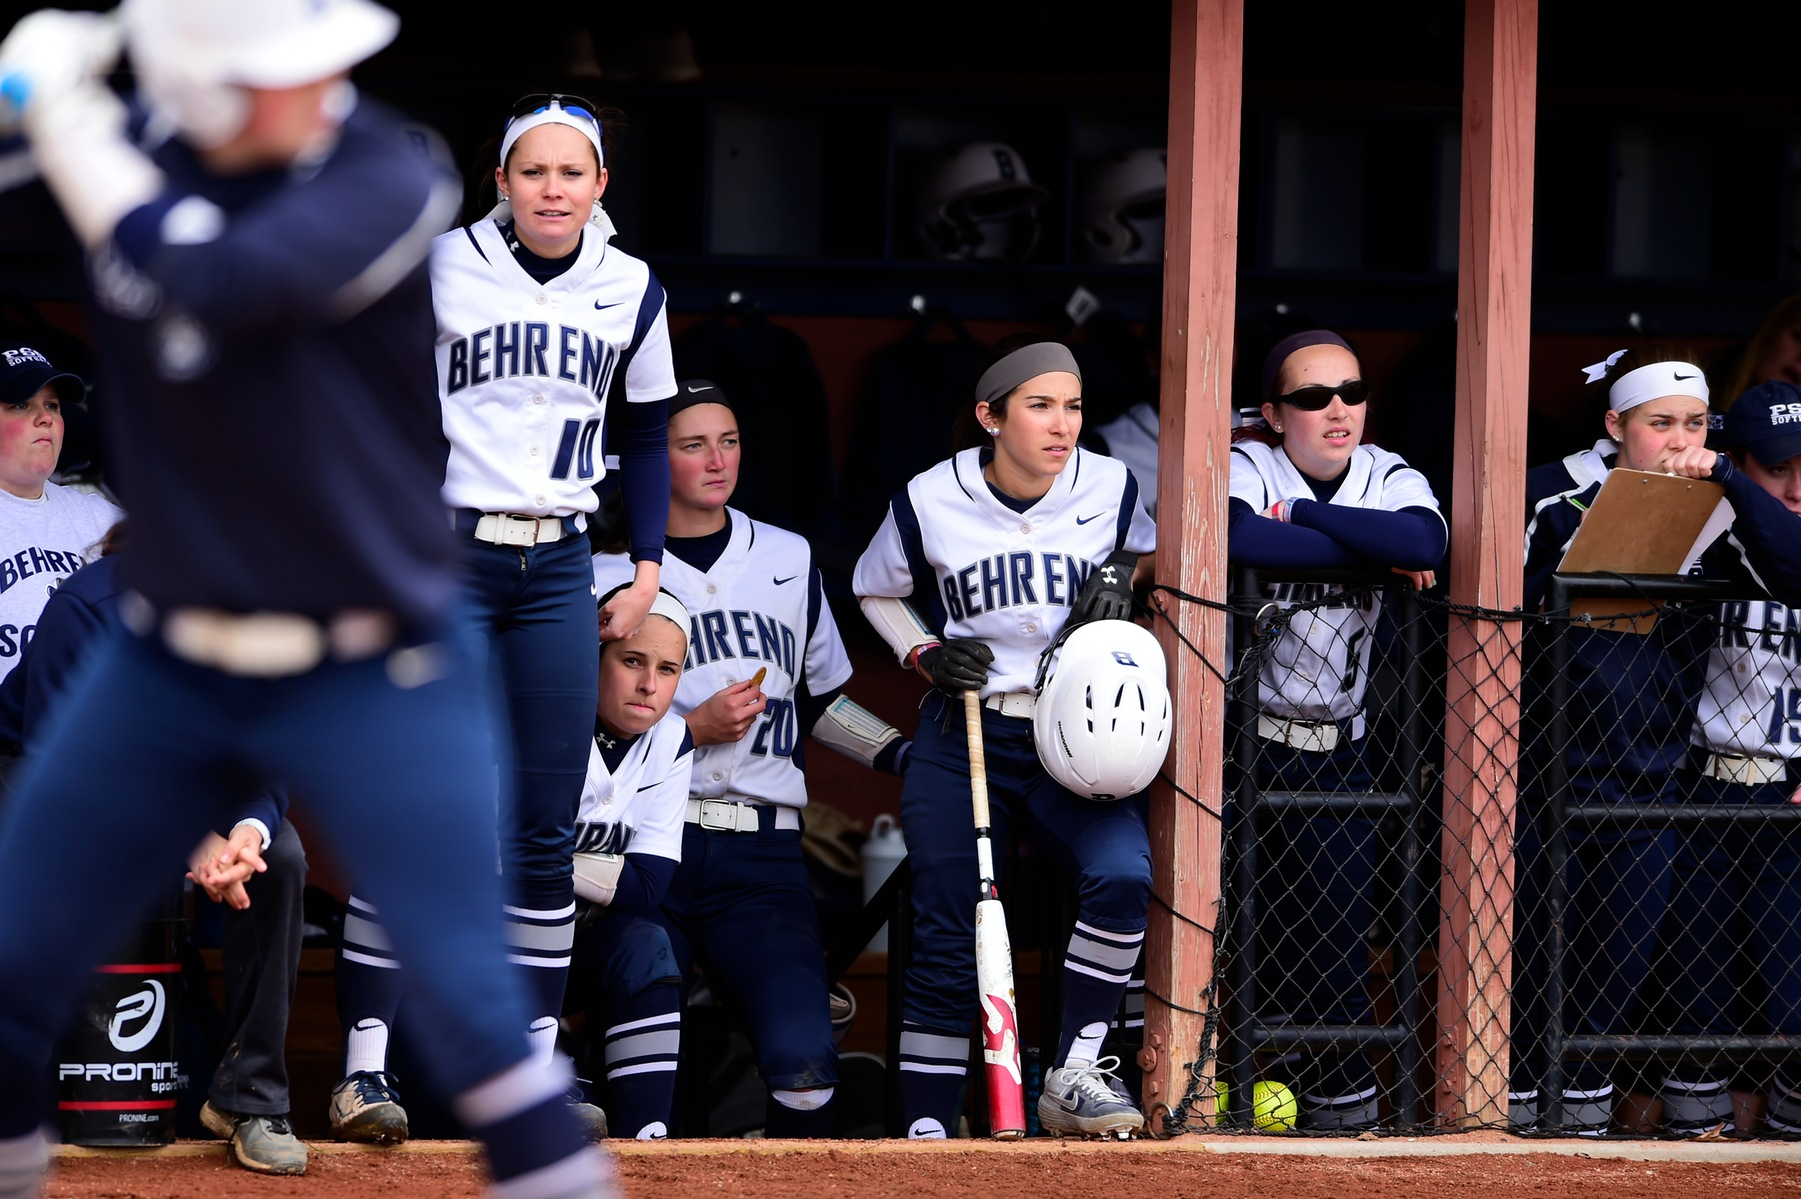 Behrend Softball Cancelled